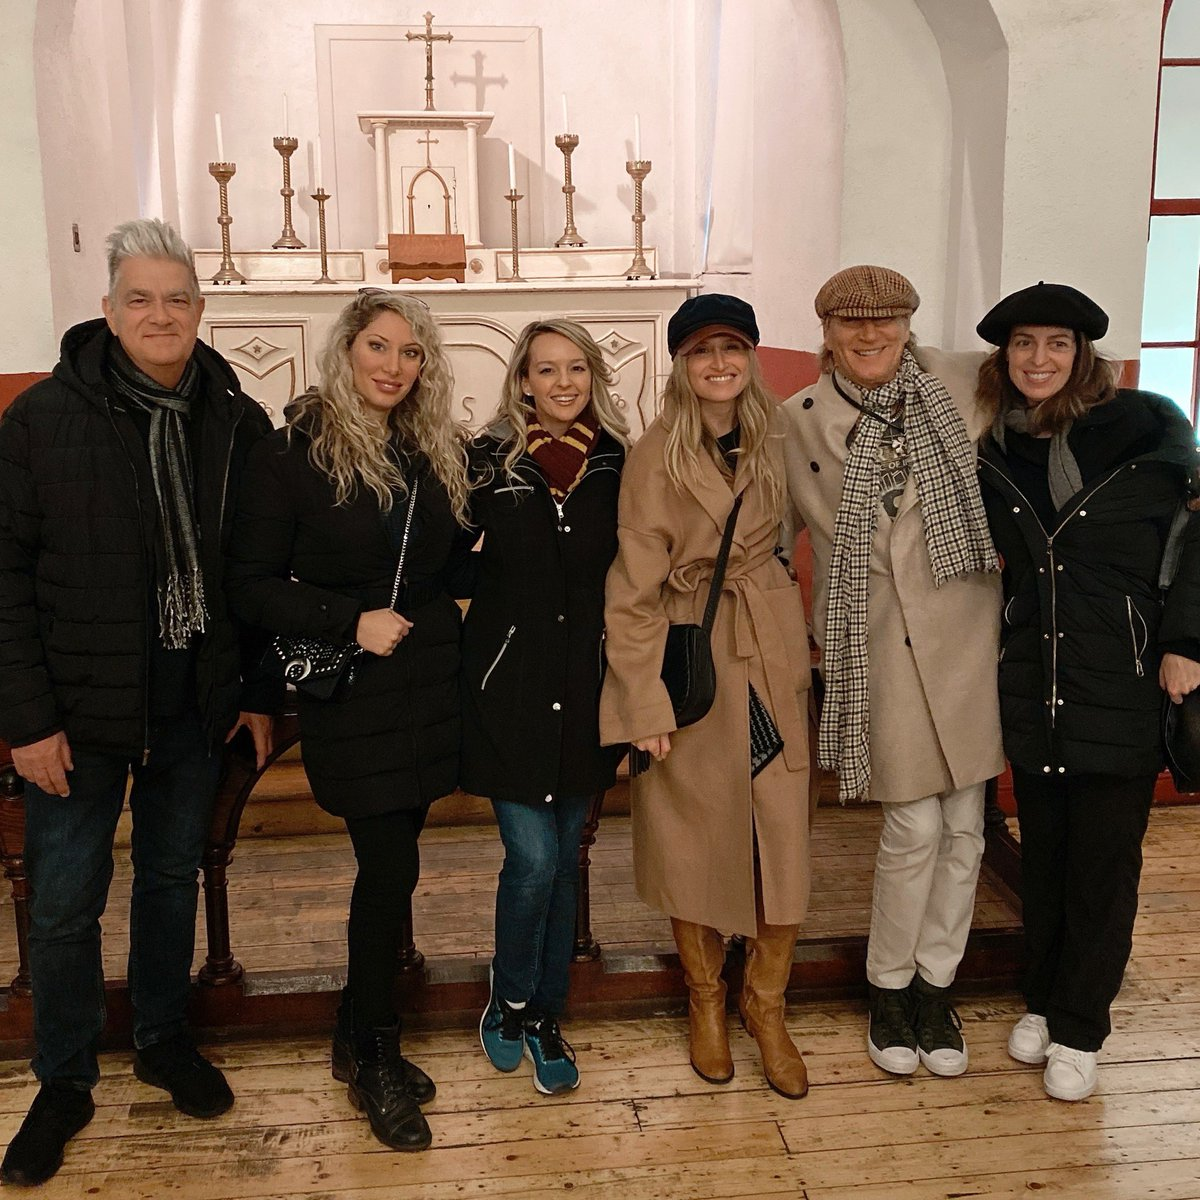 Grace remains a most tragic love story to me. Today I took some of my band mates to show them the Kilmainham Gaol where it all happened. Its impossible not to be moved and we were. See you all at Dublins 3 Arena on Wednesday and Thursday. - Rod xxx